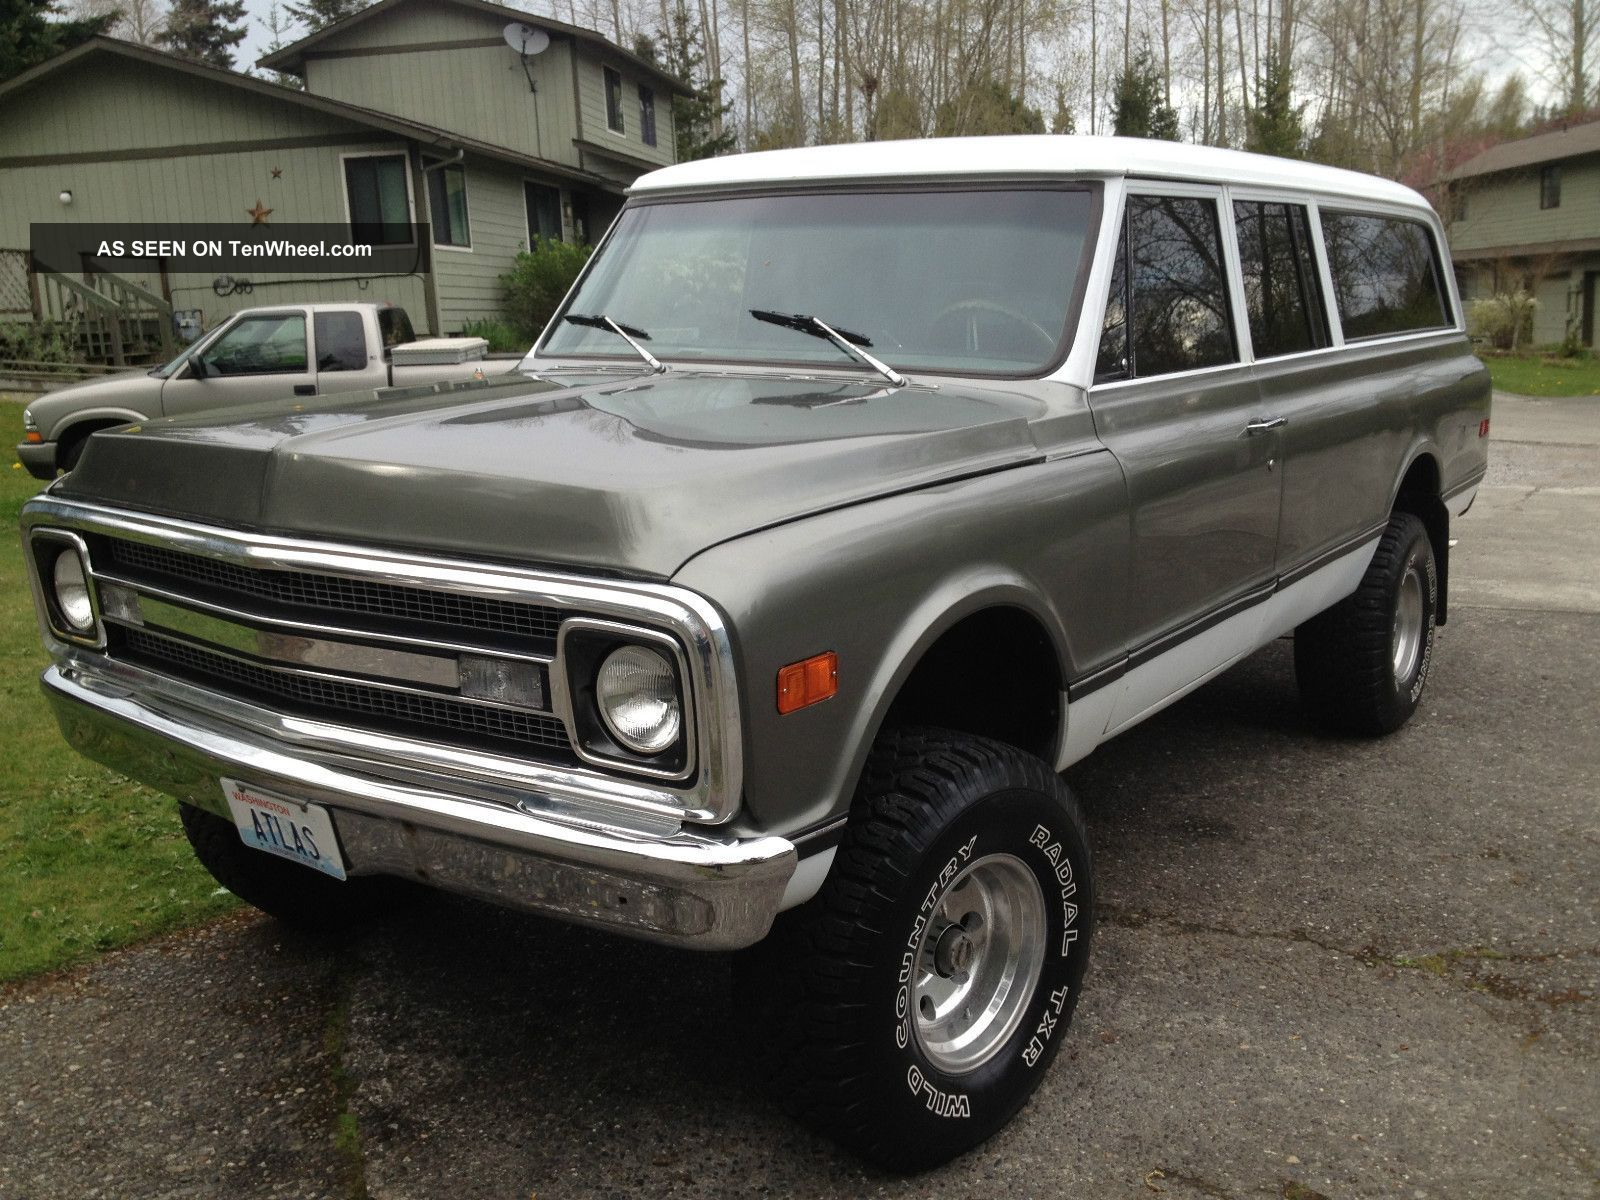 1970 Chevy Pickup Lifted 1970 Chevy Suburban Truck 4x4 350